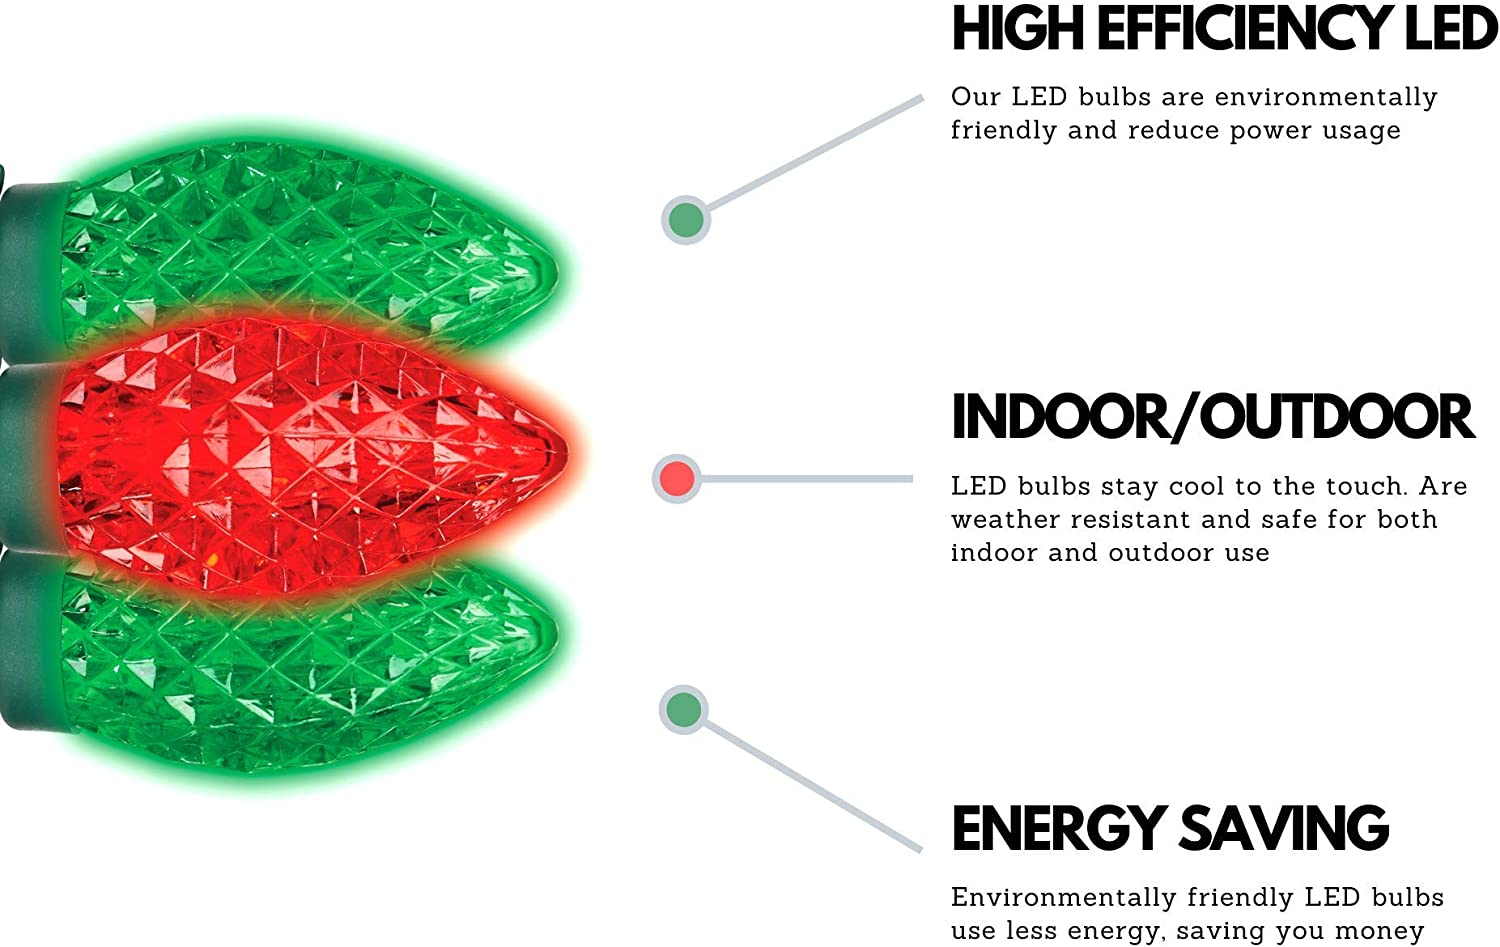 Amazon.com: NOMA LED C9 Luces de Navidad | Interior/Exterior ...